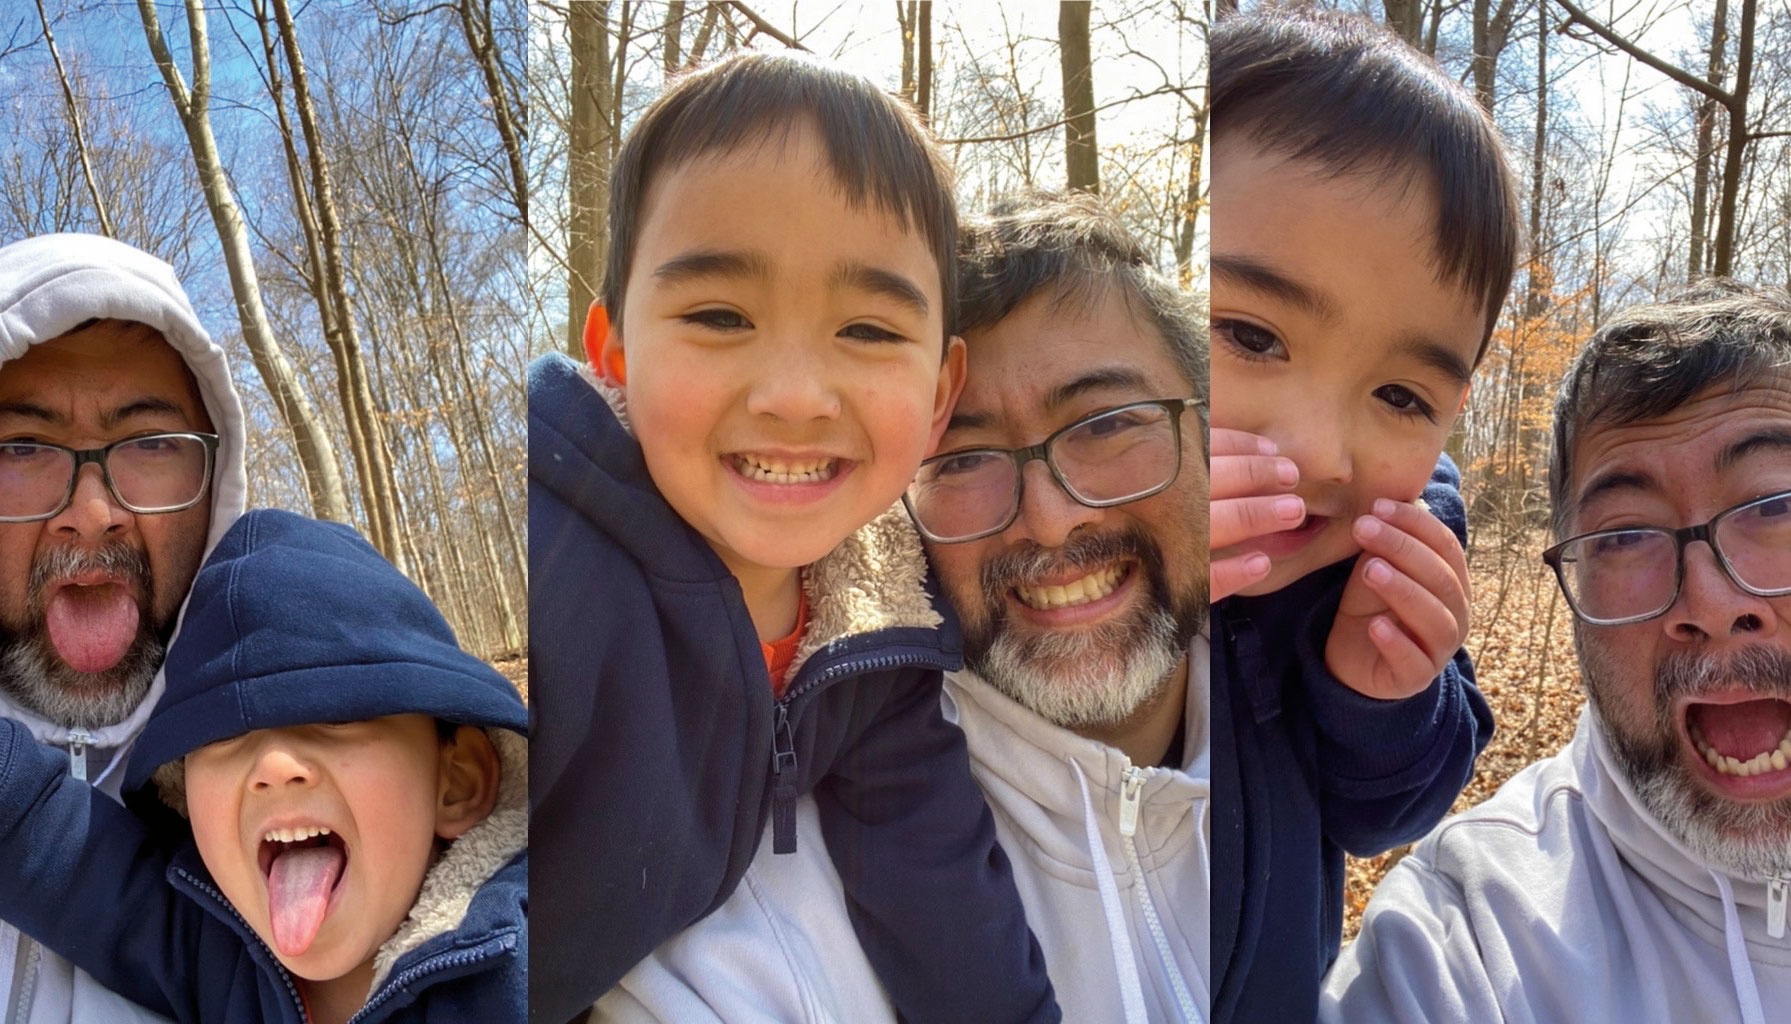 Three photos of a man and his son. They are both wearing hoodies and smiling in each photos.